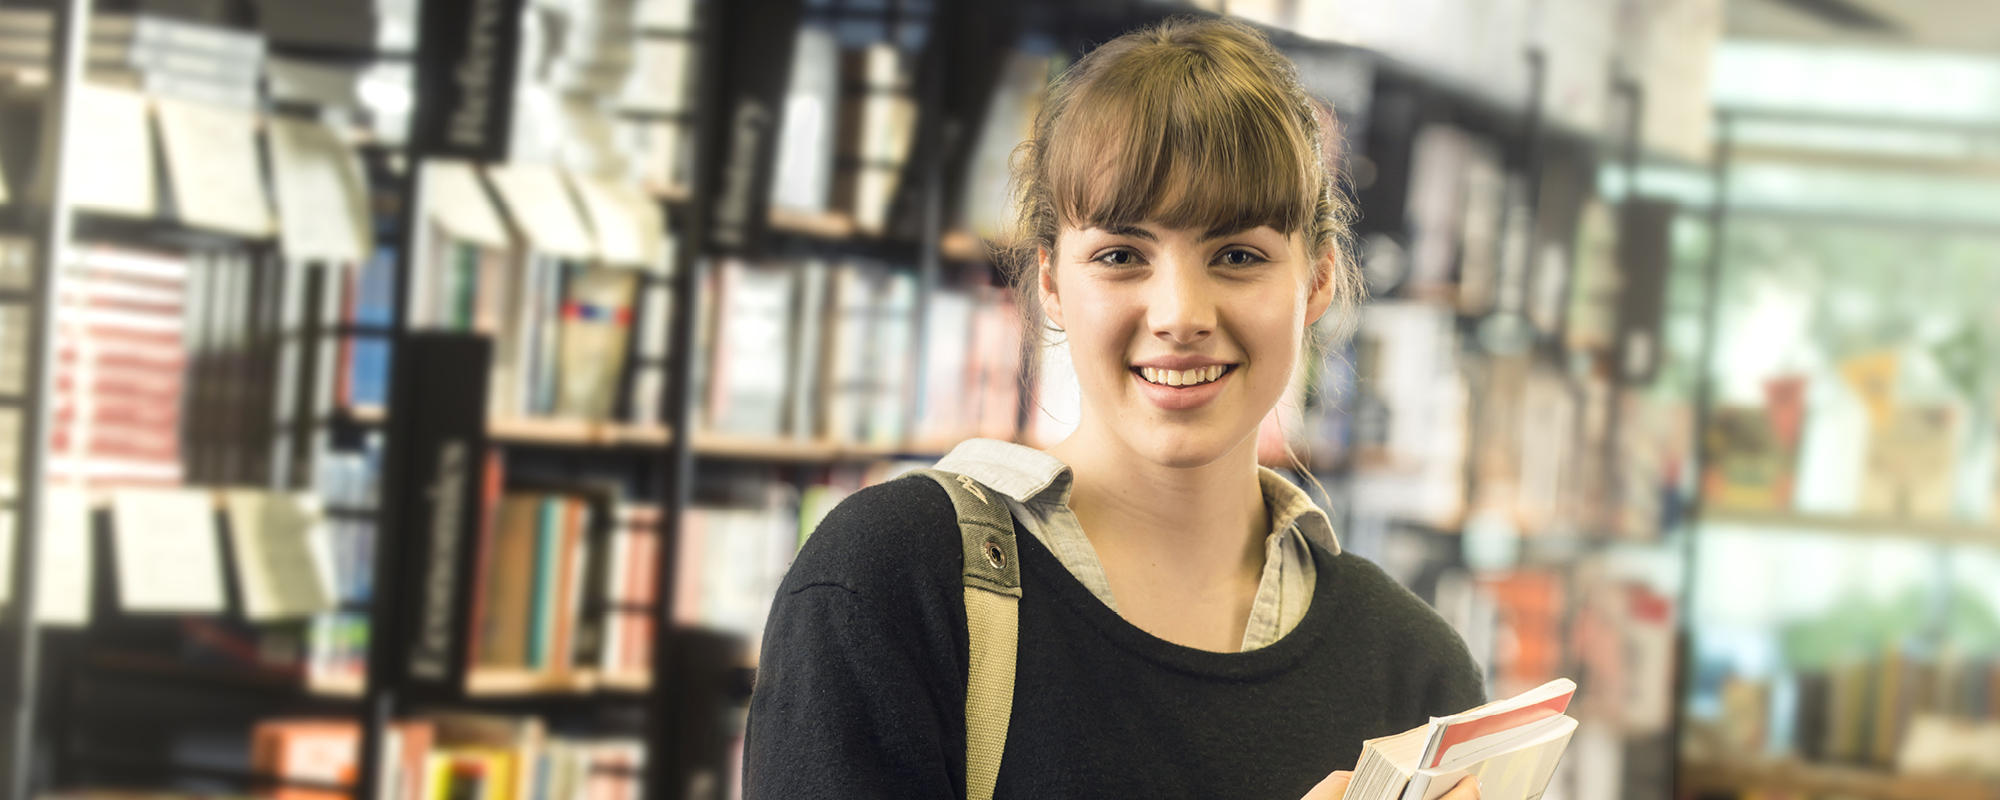 A smiling female student holds a book in front of a bookshelf.